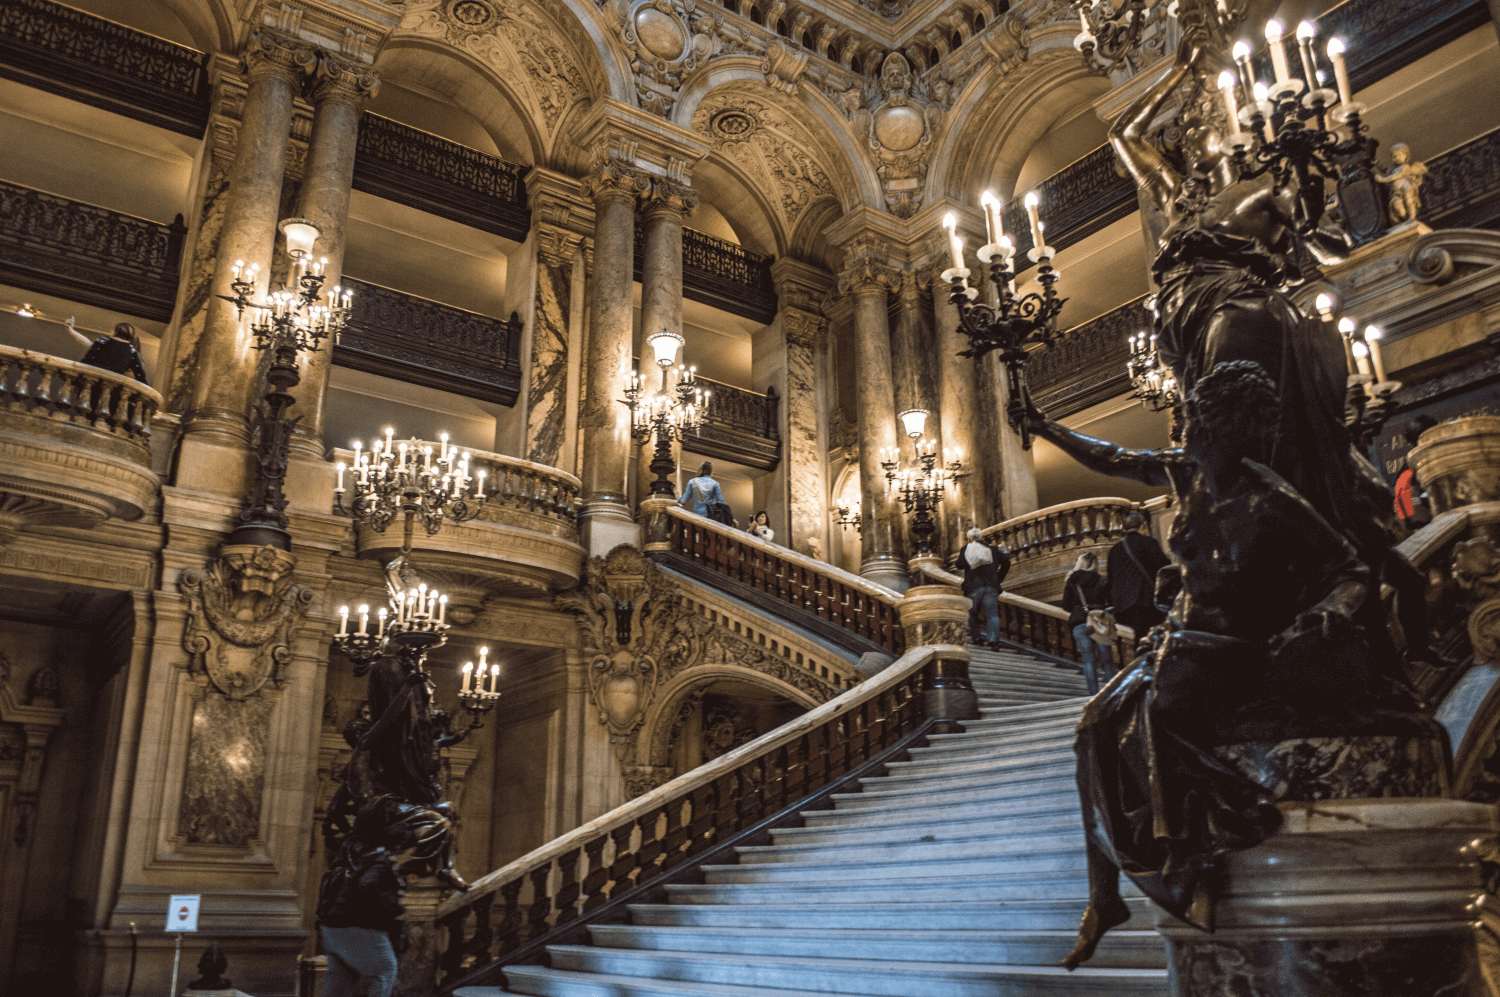 Inside the Paris Opera House, one of the most beautiful Paris landmarks